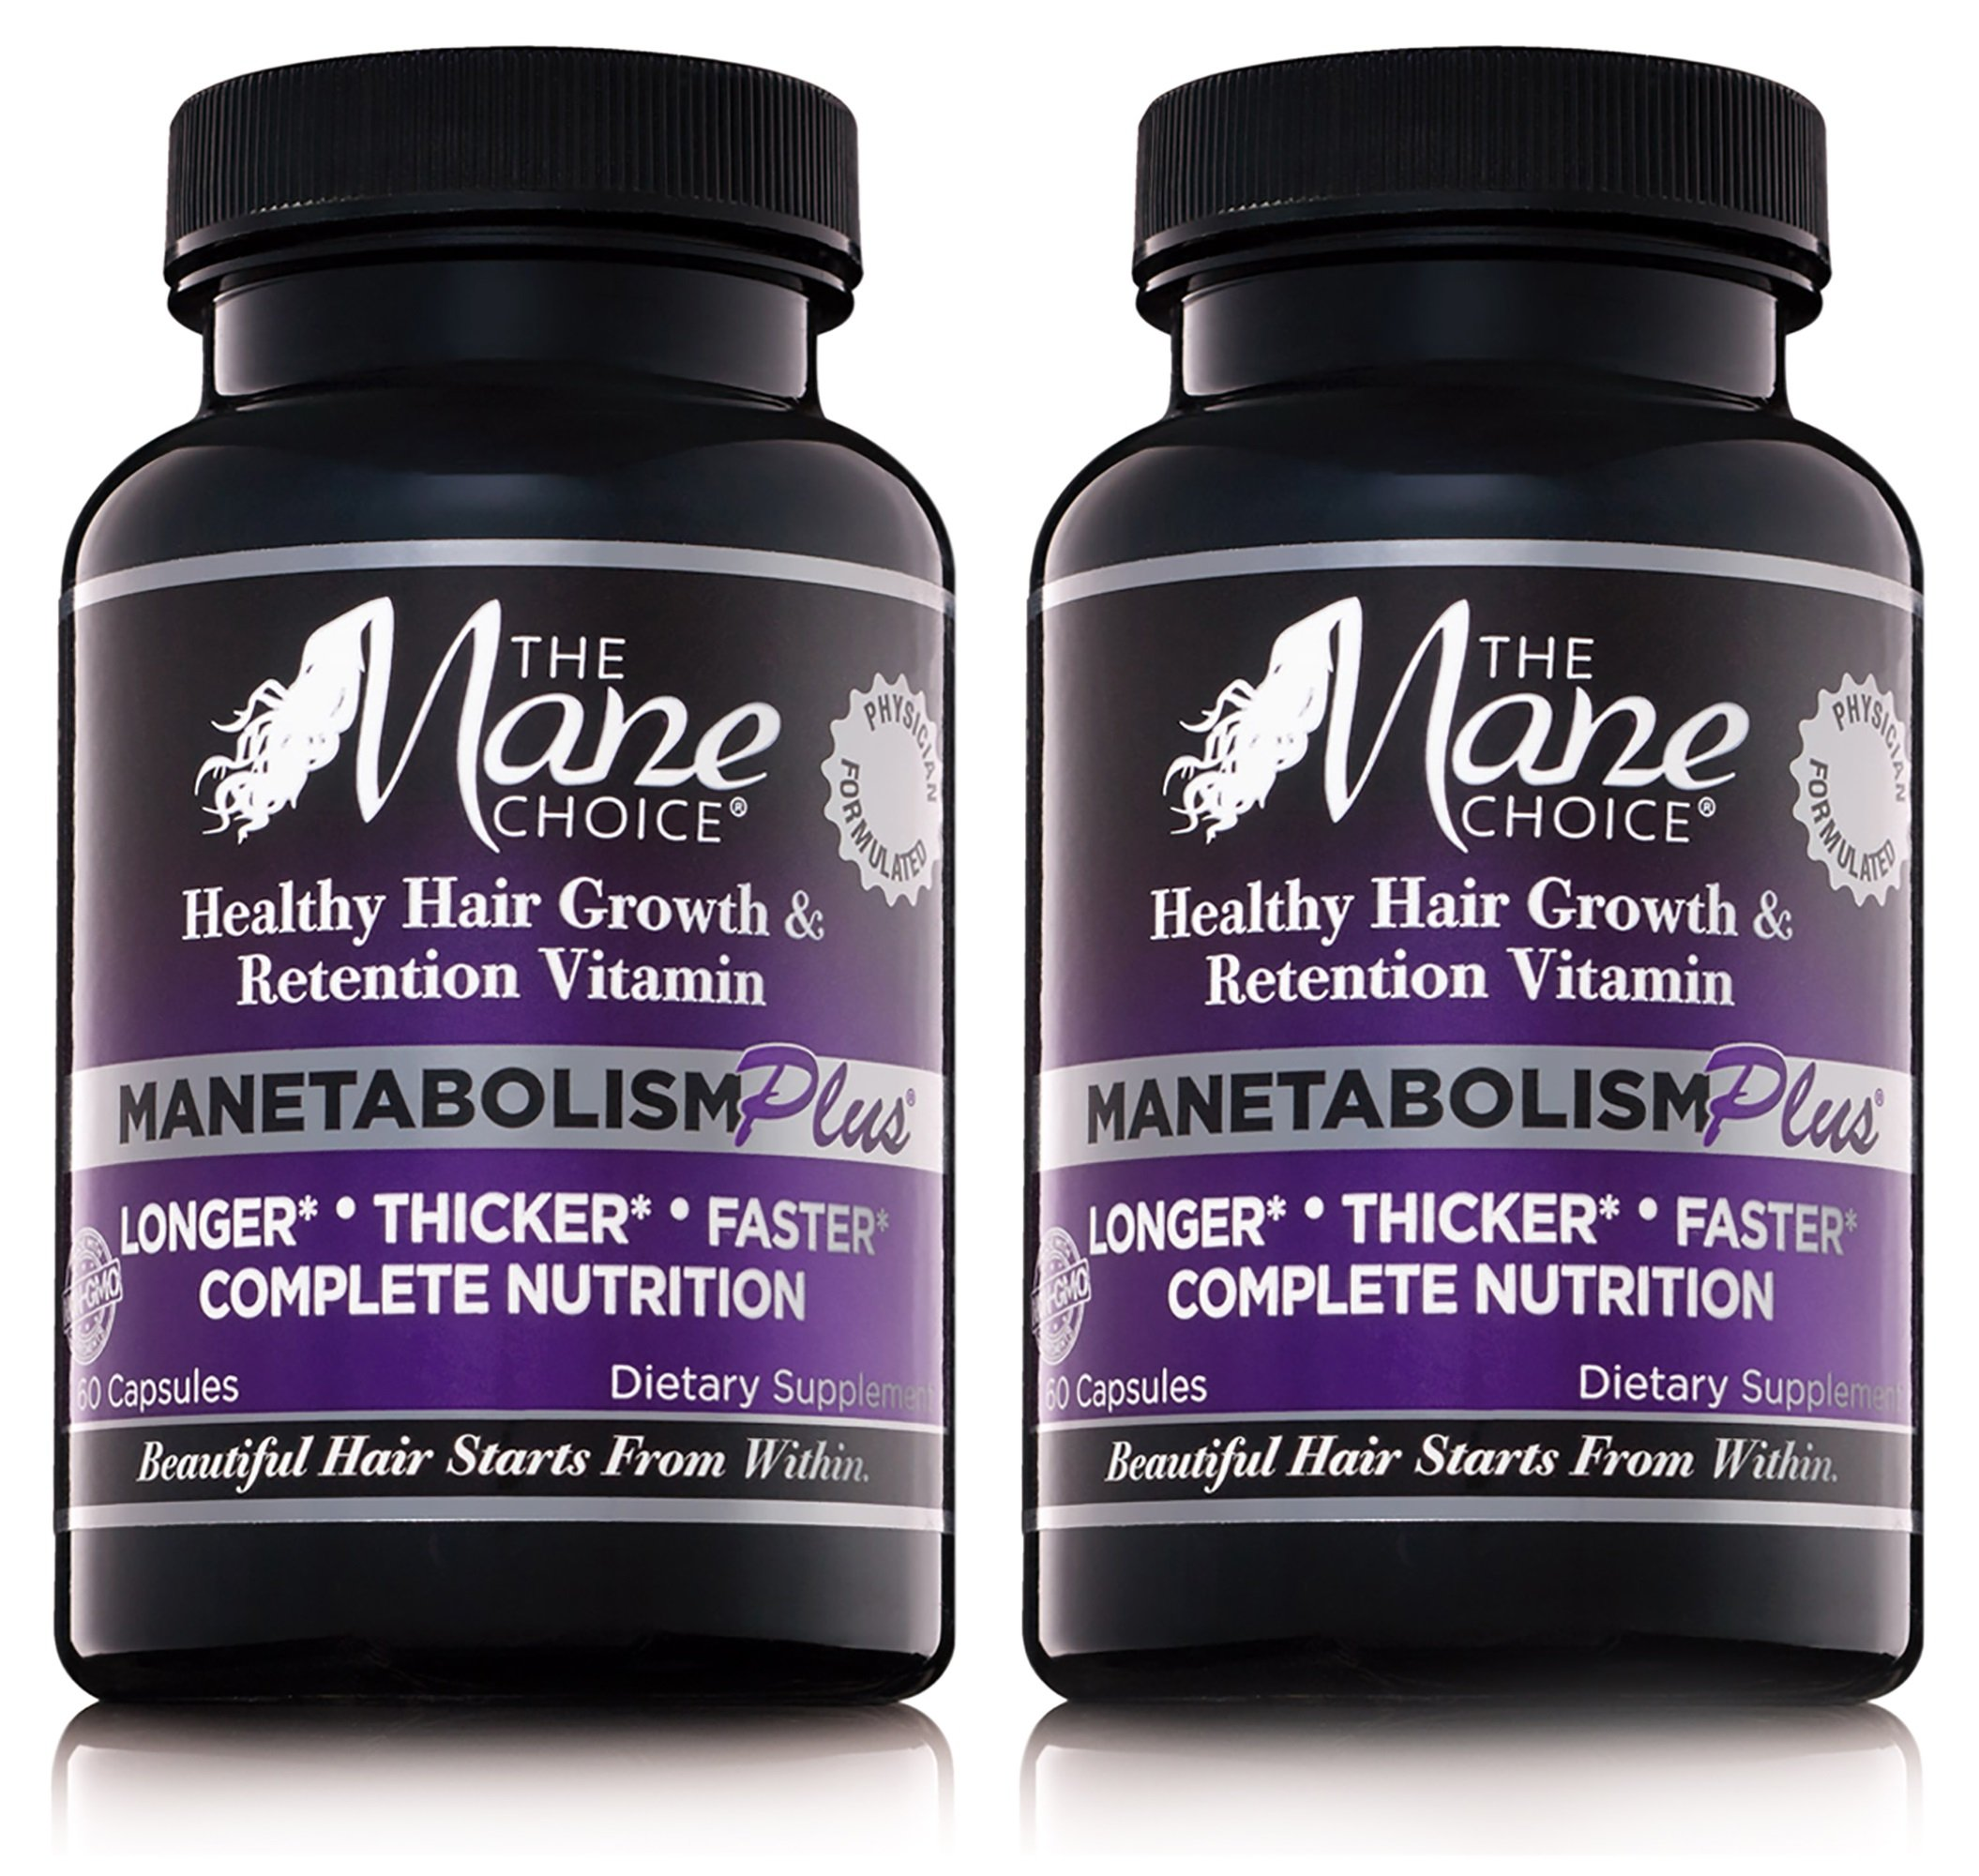 The Mane Choice MANETABOLISM Plus Healthy Hair Growth Vitamins - Complete Nutrition Supplements for Longer, Thicker and Healthier Hair (60 Capsules - Pack of Two)